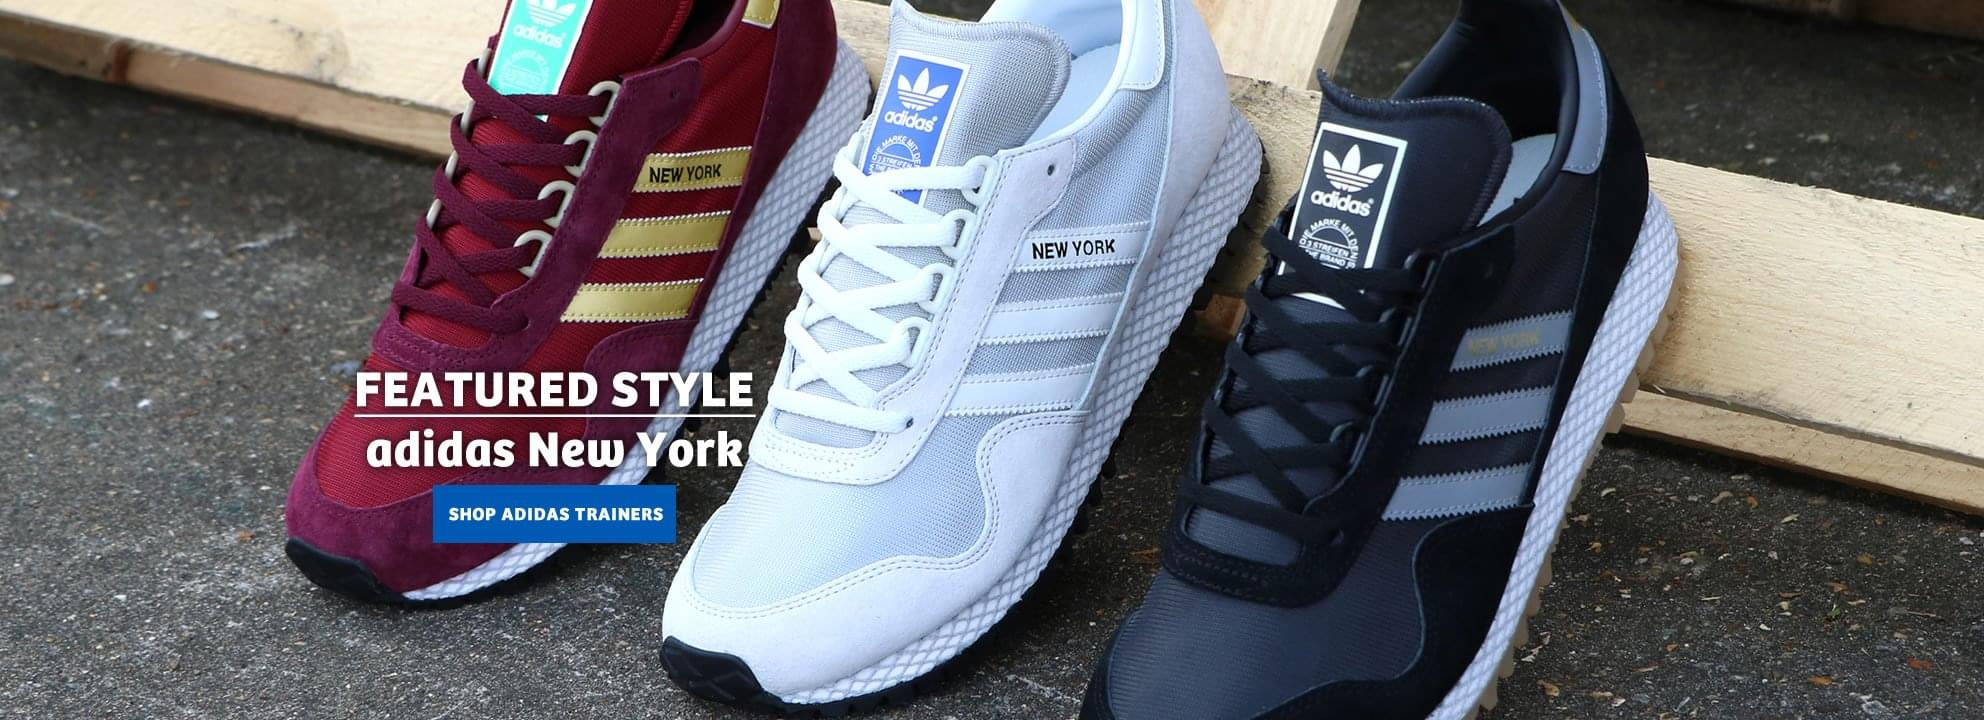 Adidas New York Trainers